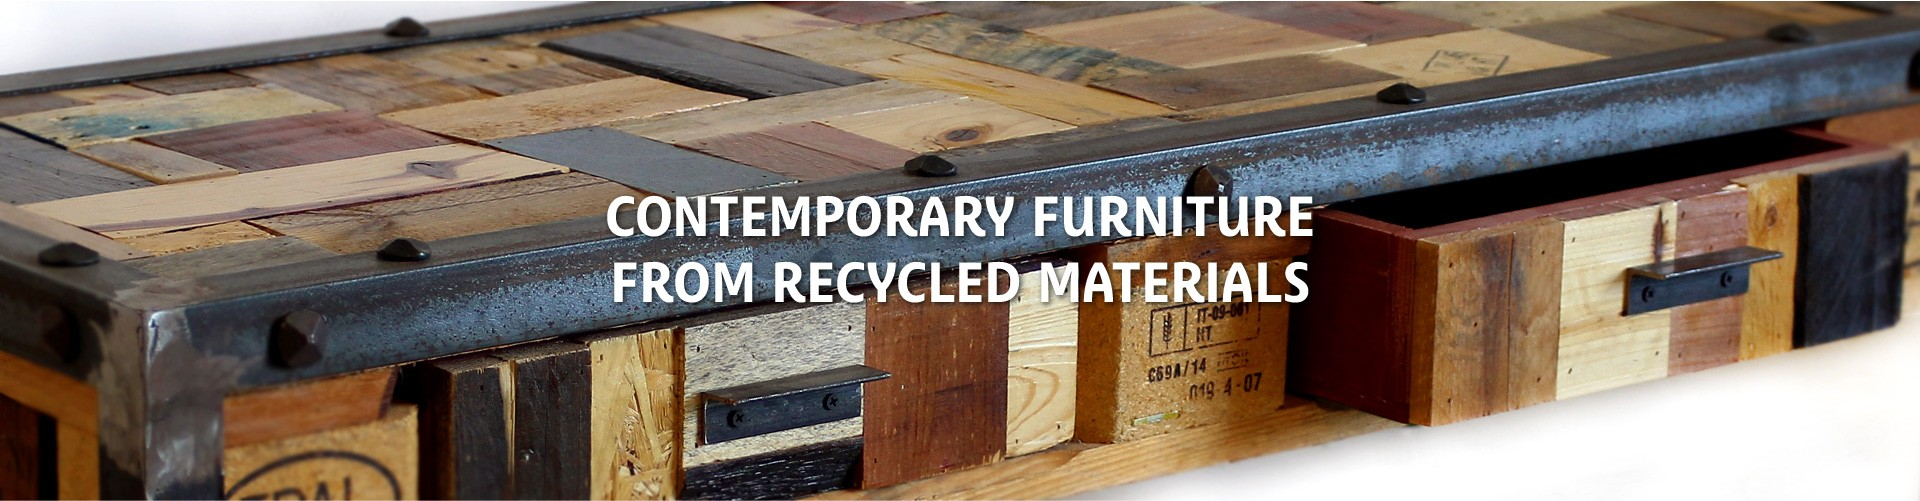 CONTEMPORARY FURNITURE FROM RECYCLED MATERIALS